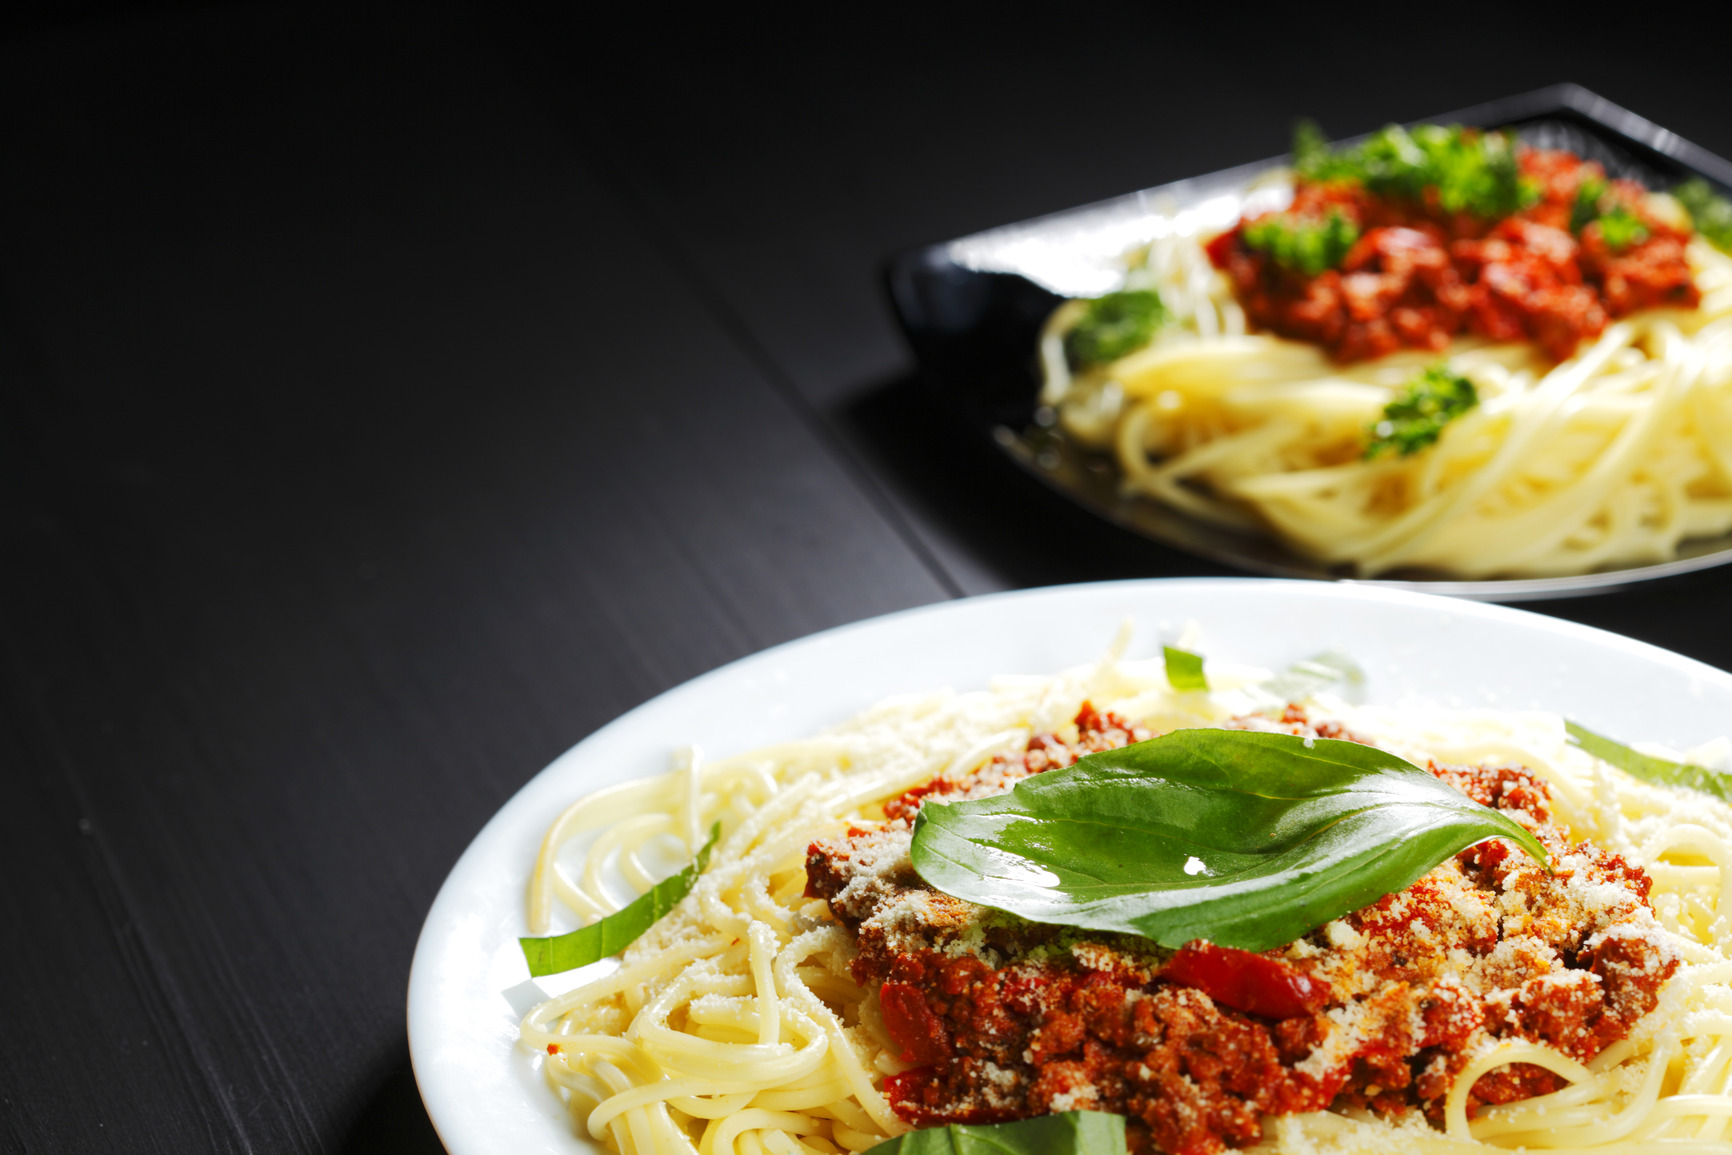 photodune-4874661-spaghetti-bolognese-with-basil-m